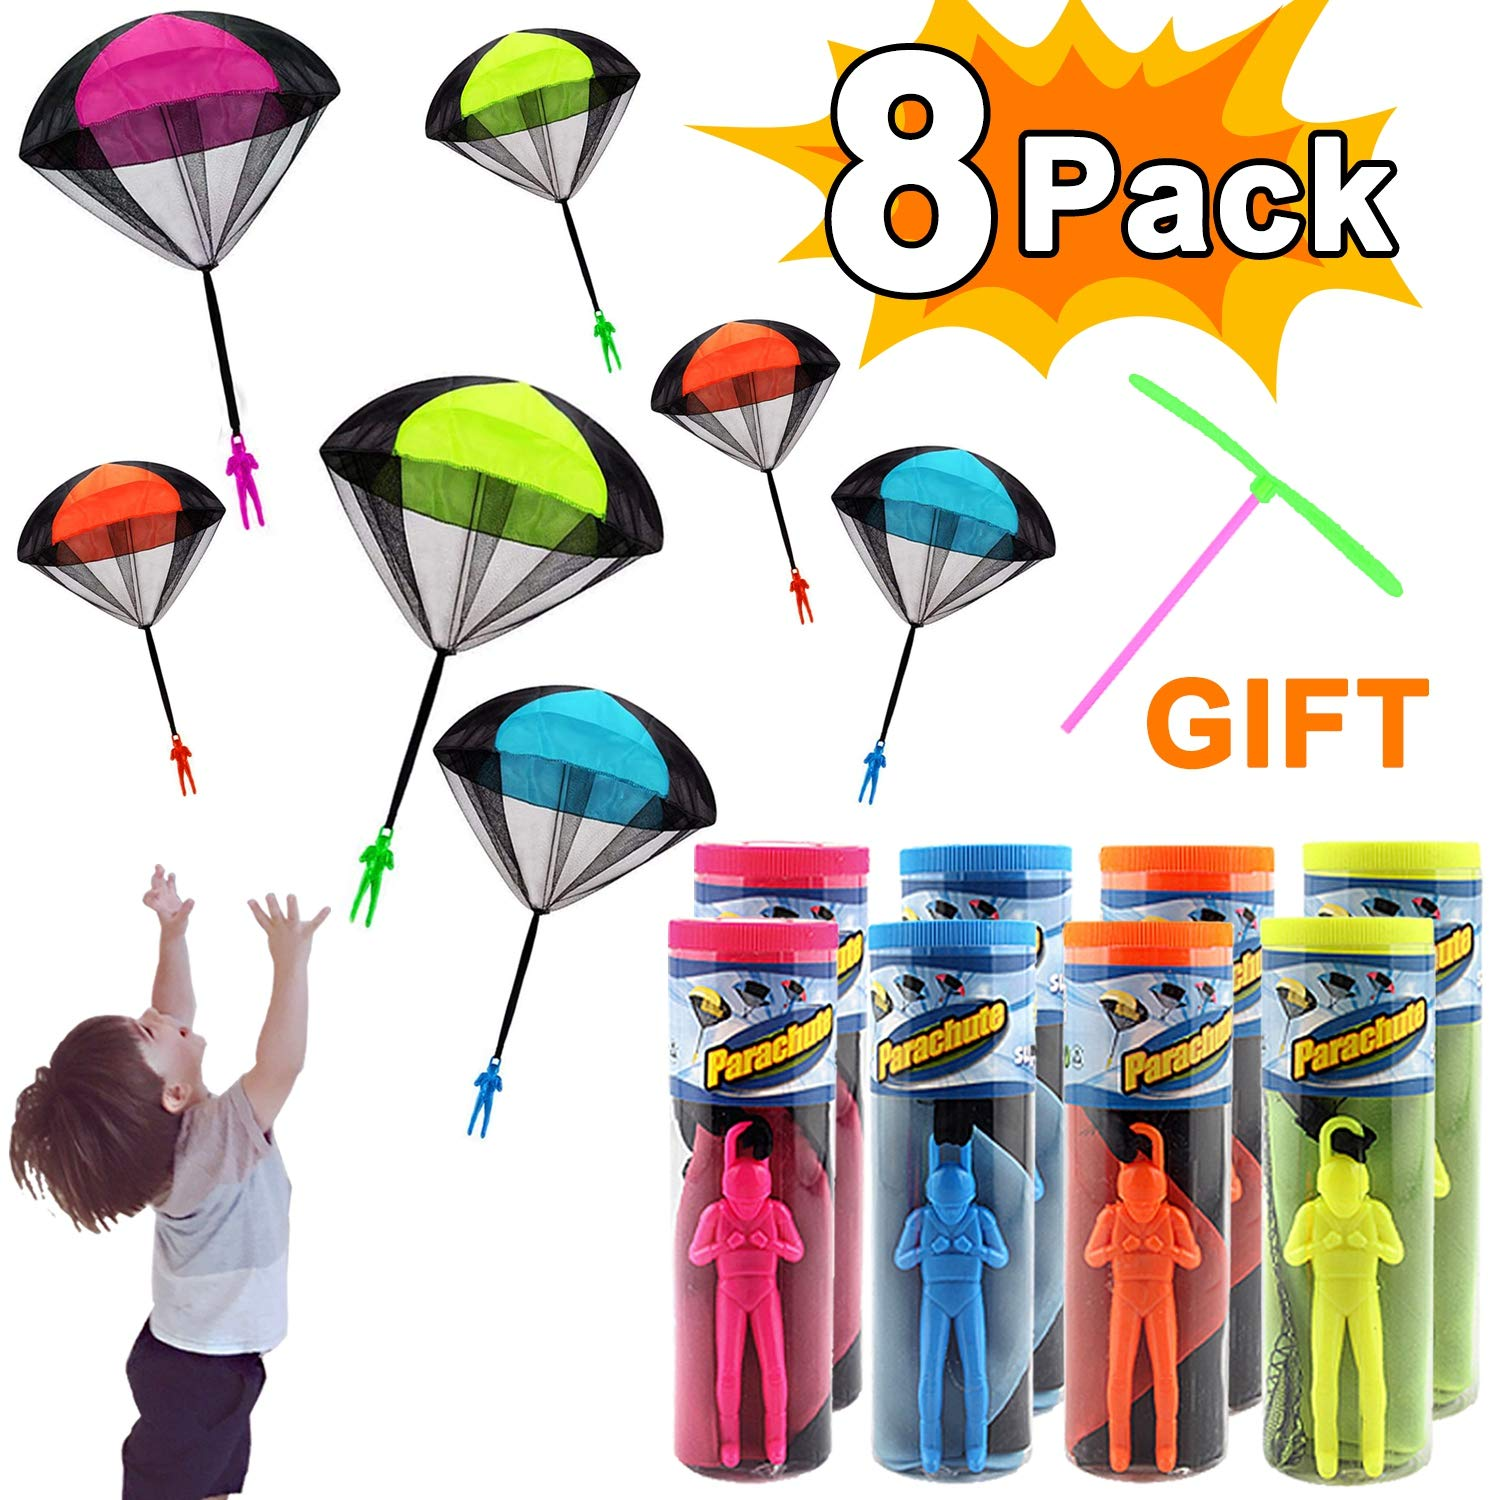 Parachute Toys, 8 Pack Parachute Toys for Kids Tangle Free Throwing Toys Parachute Outdoor Children's Flying Toys with 1 Free Plastic Dragonfly Kids Boys Girls Adults Back to School Gifts